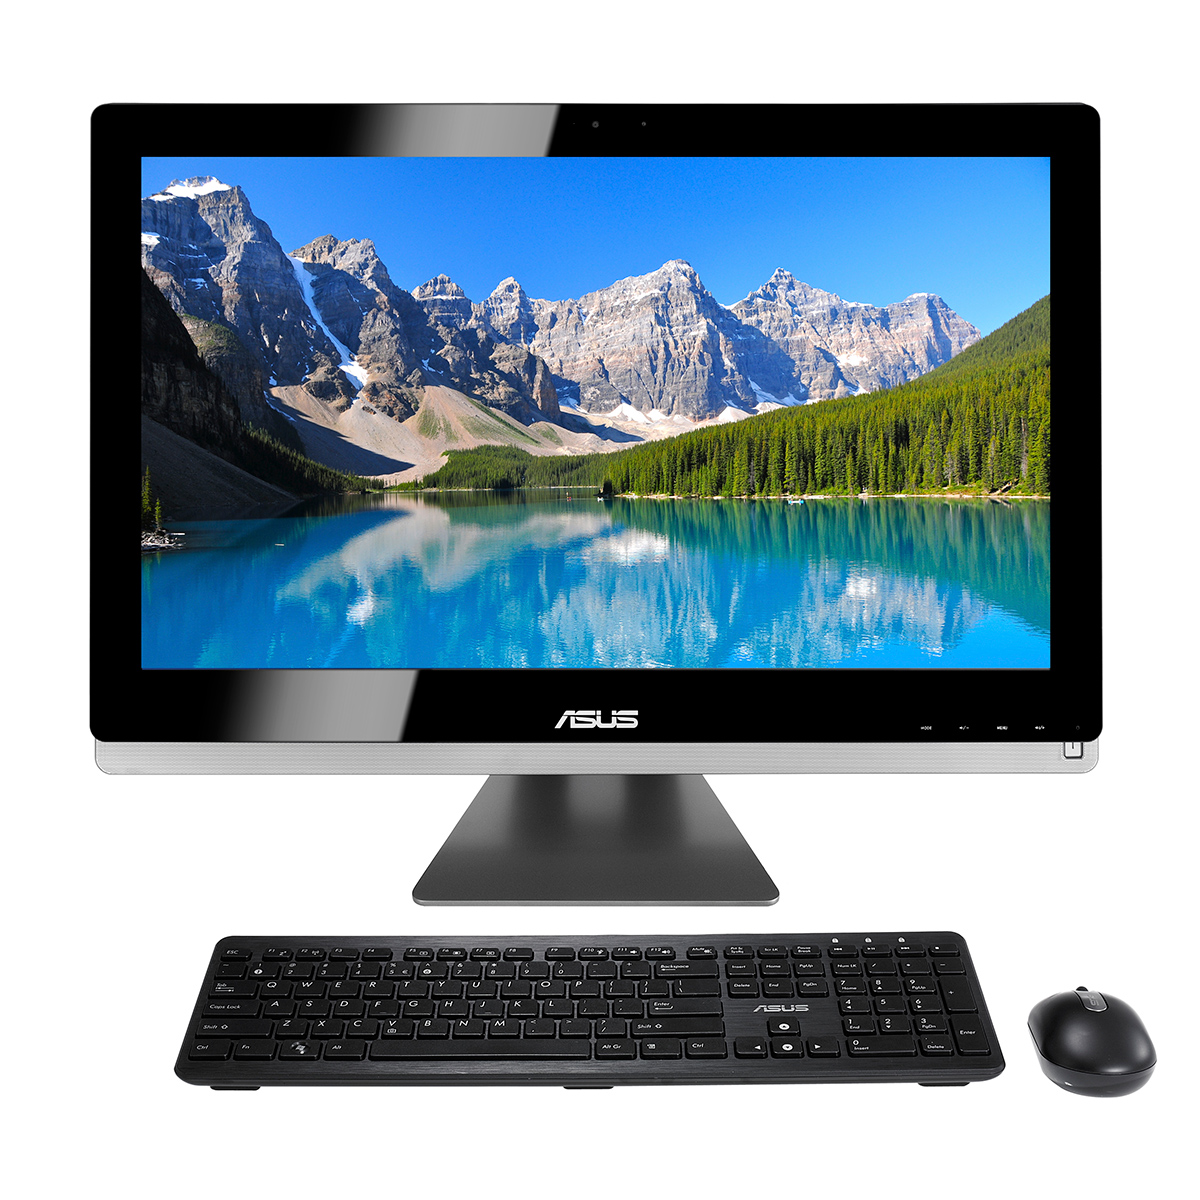 Asus all in one pc et2702igth b097k pc de bureau asus - Ordinateur de bureau hp intel core i7 ...